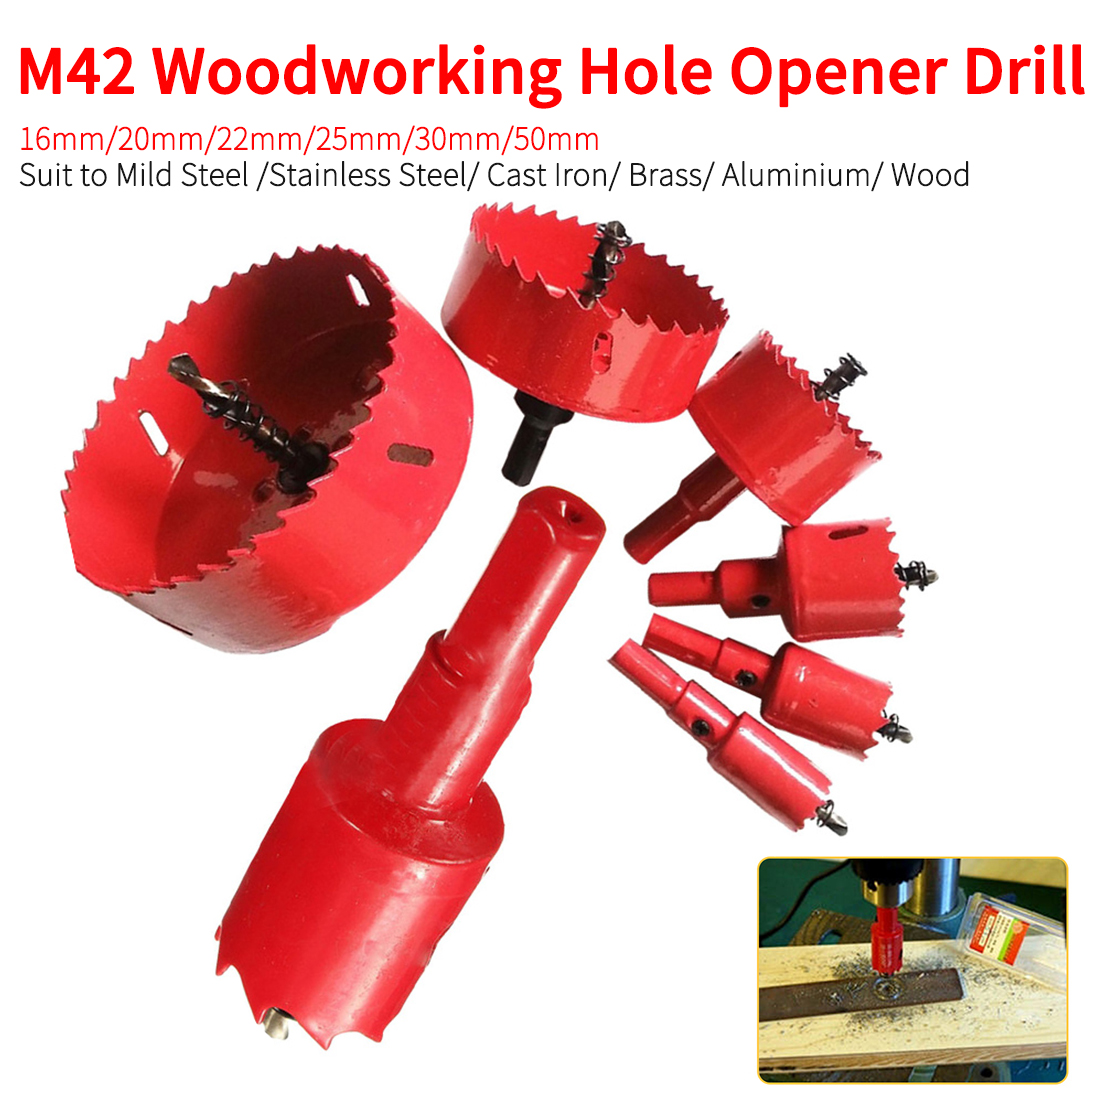 Woodworking Wood Tool Bit M42 Hole Saws Opener Drill Bit For DIY Wood Metal Cutter Drill 16mm/20mm/22mm/25mm/30mm/50mm